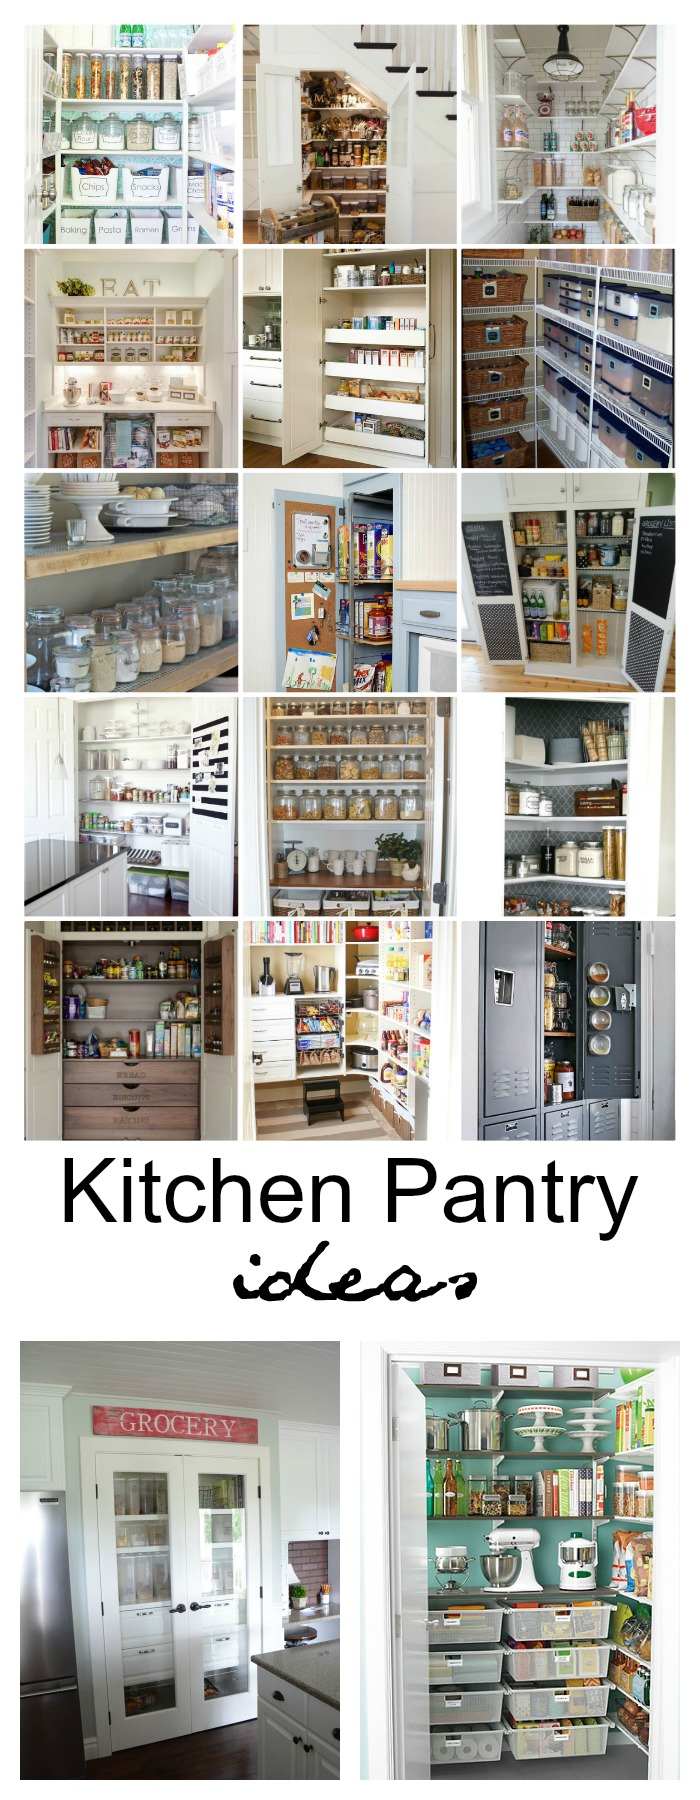 Kitchen-Pantry-Ideas-Pin